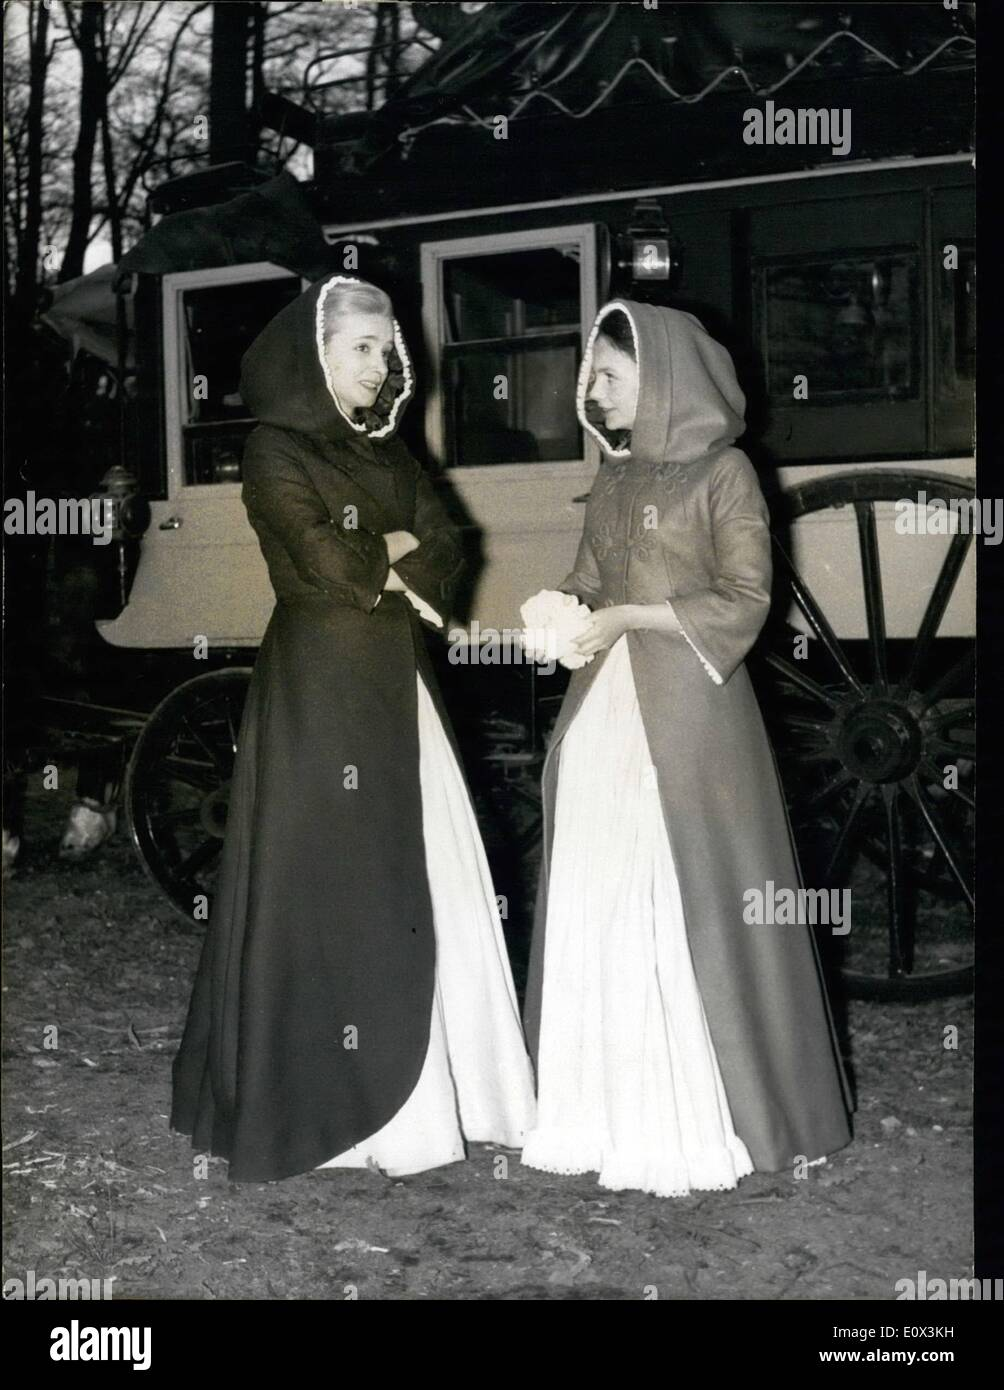 Mar. 03, 1965 - New Screen Version of ''The Two Oprhans'': A new screen version of the famous novel ''The two orphans'' is now in the making in Paris. Photo shows Valeria Ciangottini (left) and Sophie Lares, The two main characters, pictured during a scene filmed in Saint-German woods. - Stock Image